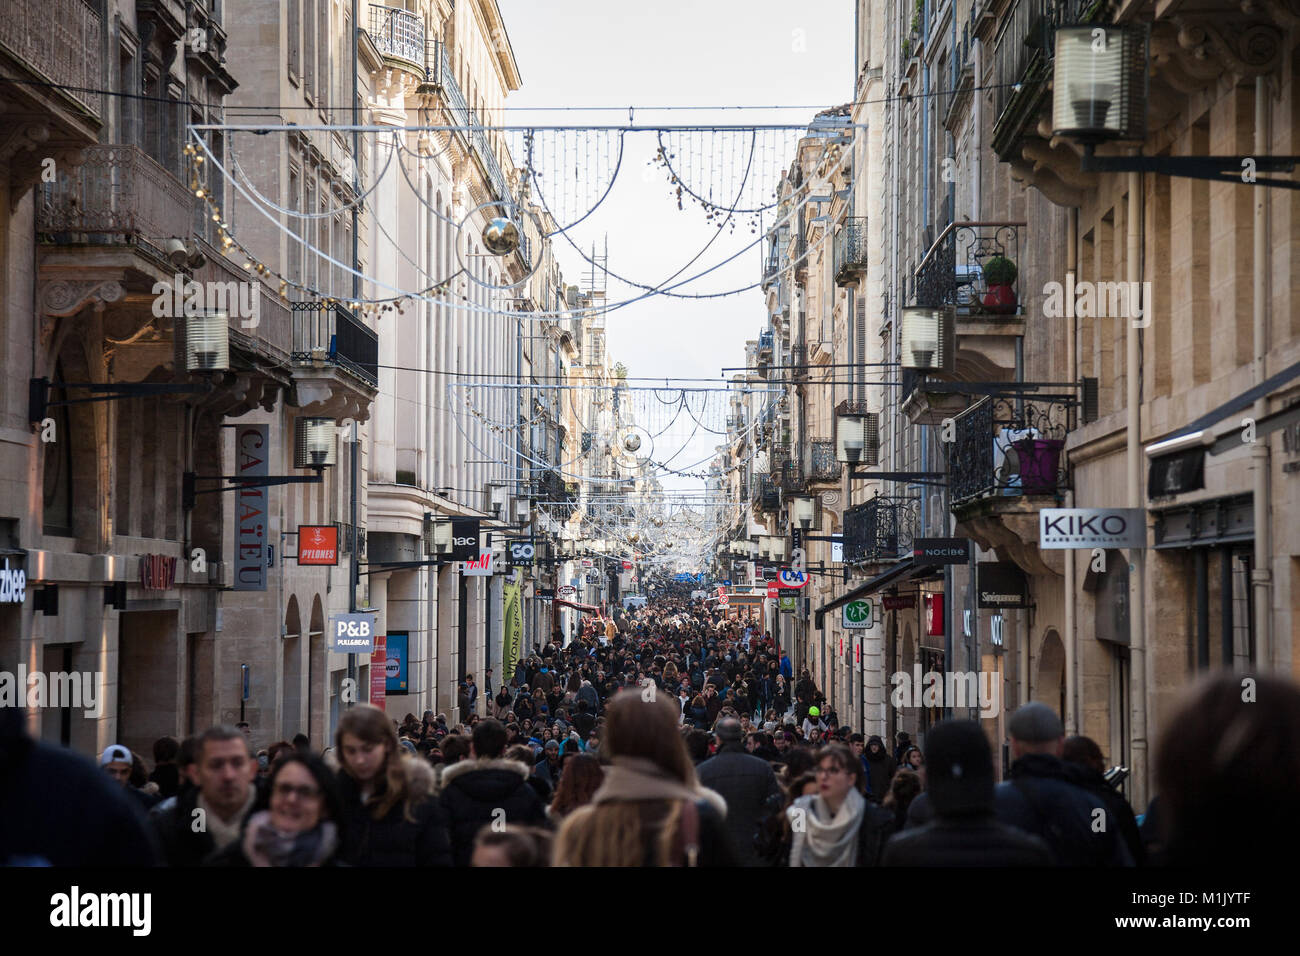 BORDEAUX, FRANCE - DECEMBER 27, 2017: Sainte Catherine street during rush hour crowded with people shopping among - Stock Image